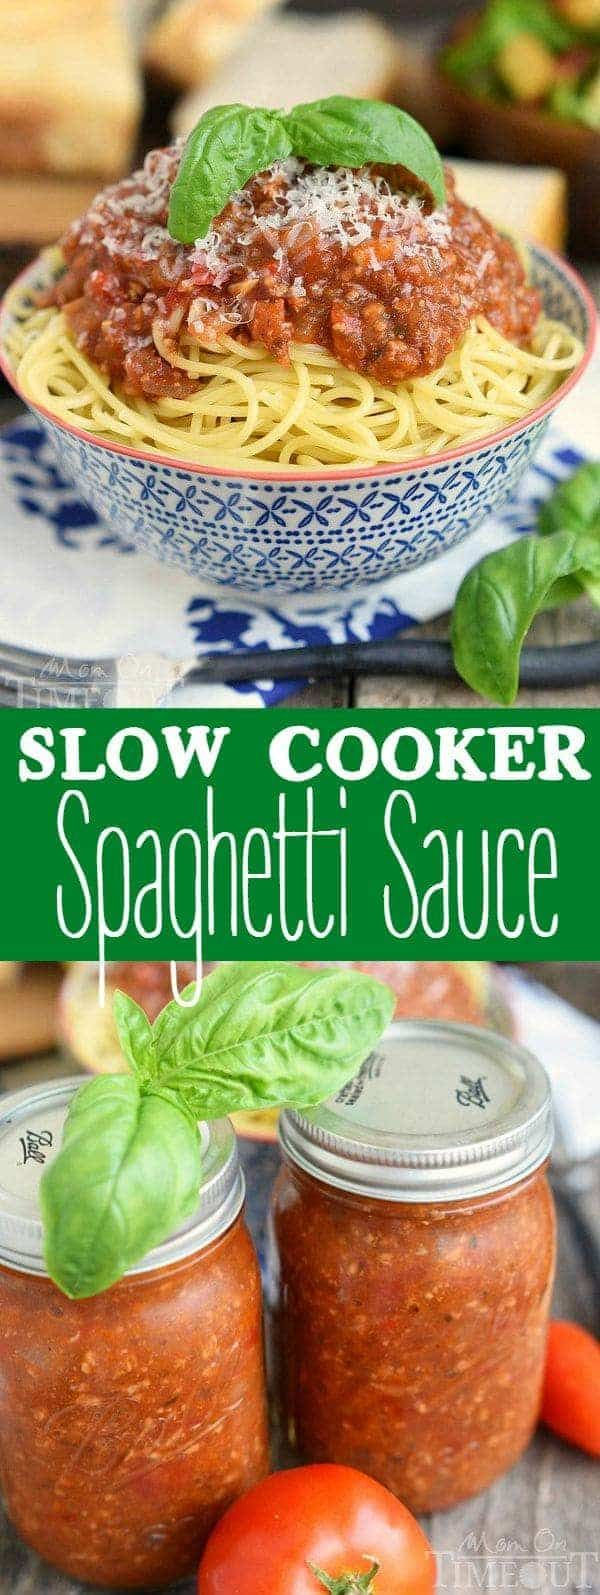 Slow Cooker Spaghetti Sauce - Mom on Timeout